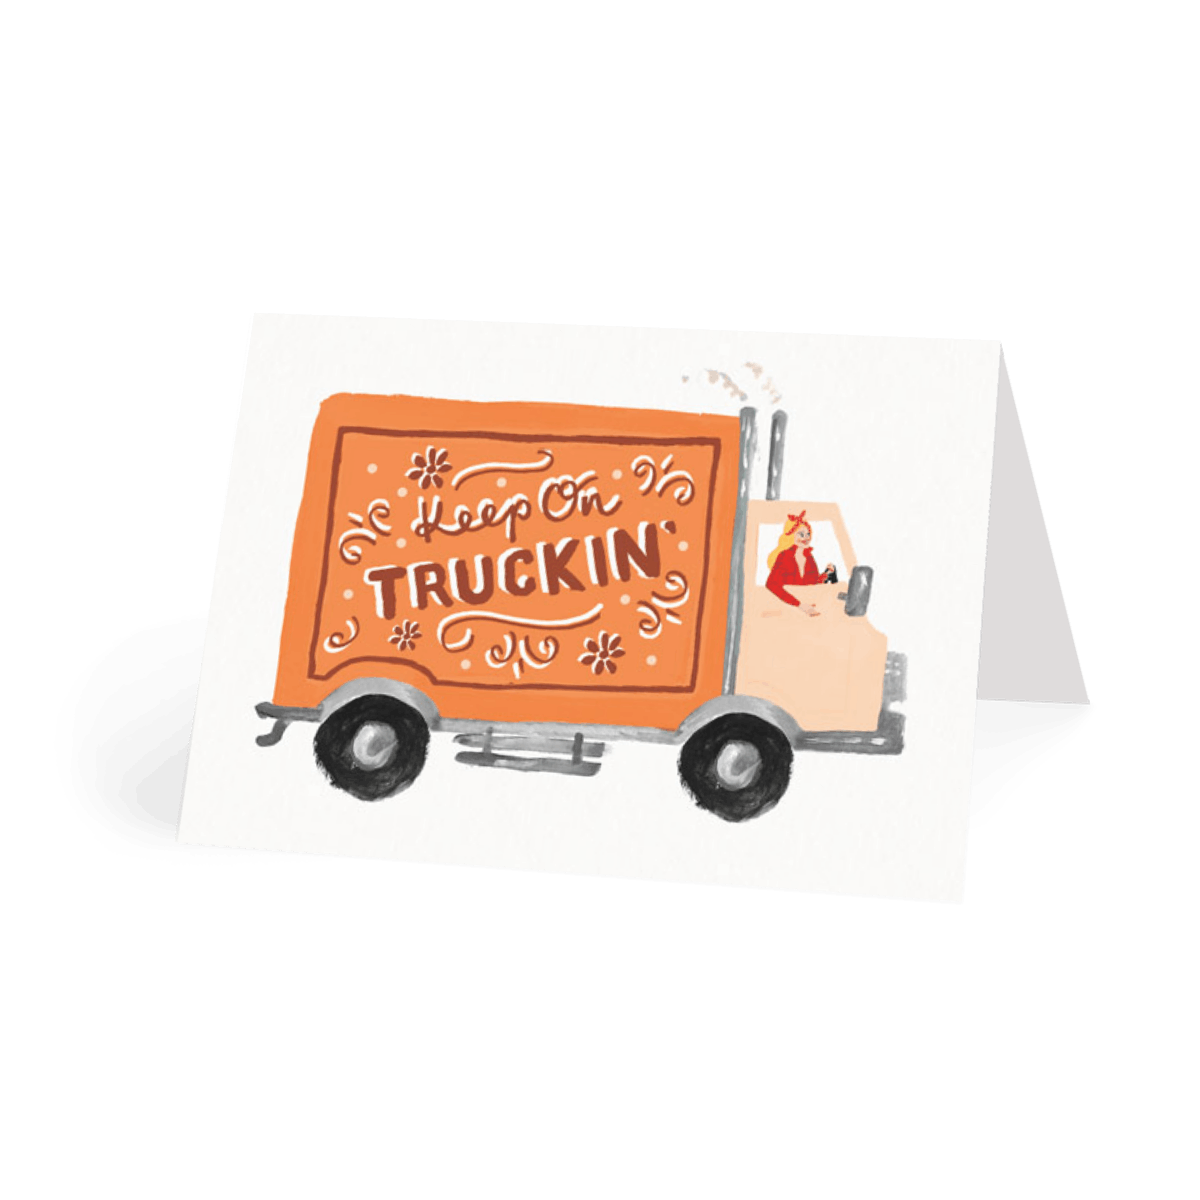 Https%3a%2f%2fwww.papier.com%2fproduct image%2f61978%2f14%2fkeep on truckin 14702 front 1547826715.png?ixlib=rb 1.1